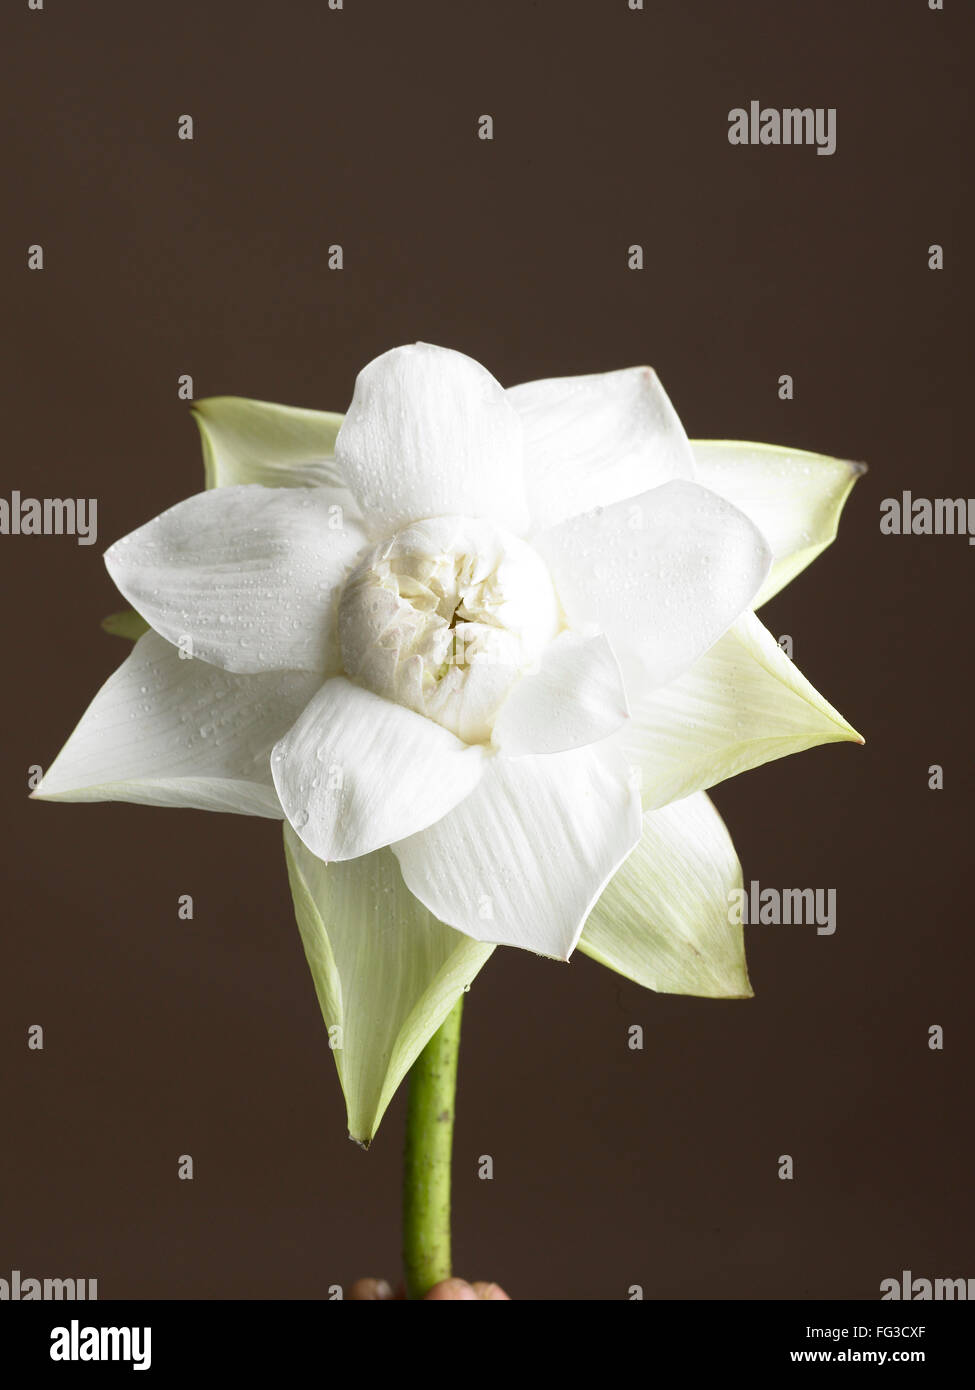 White Lotus Flower With Black Background Stock Photo 95962343 Alamy